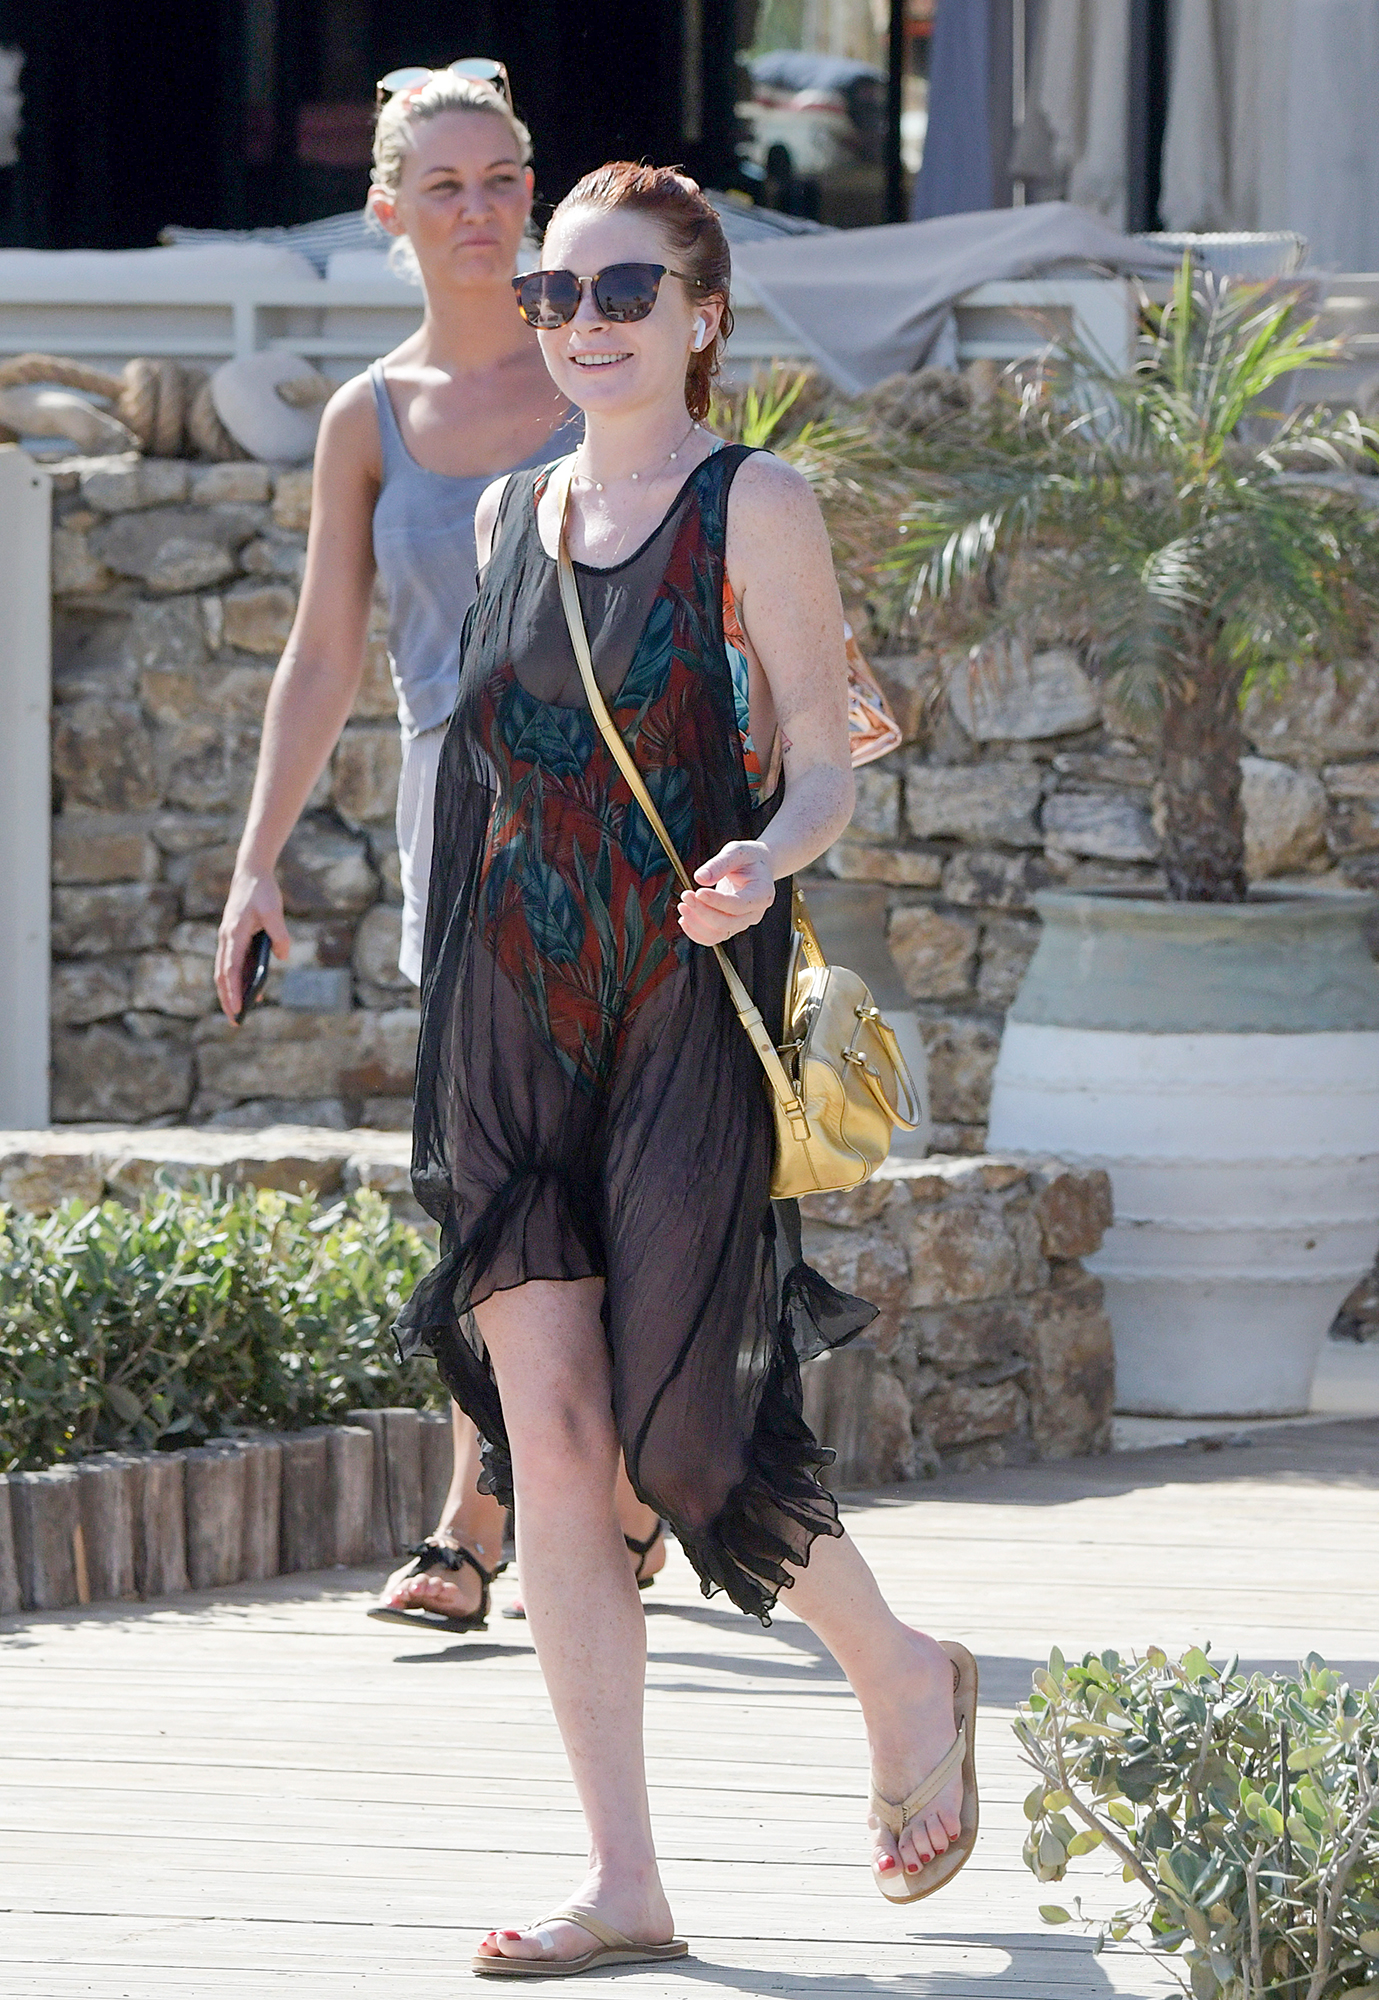 Lindsay Lohan poses for swimsuit selfies outside Lohan Beach House in Mykonos